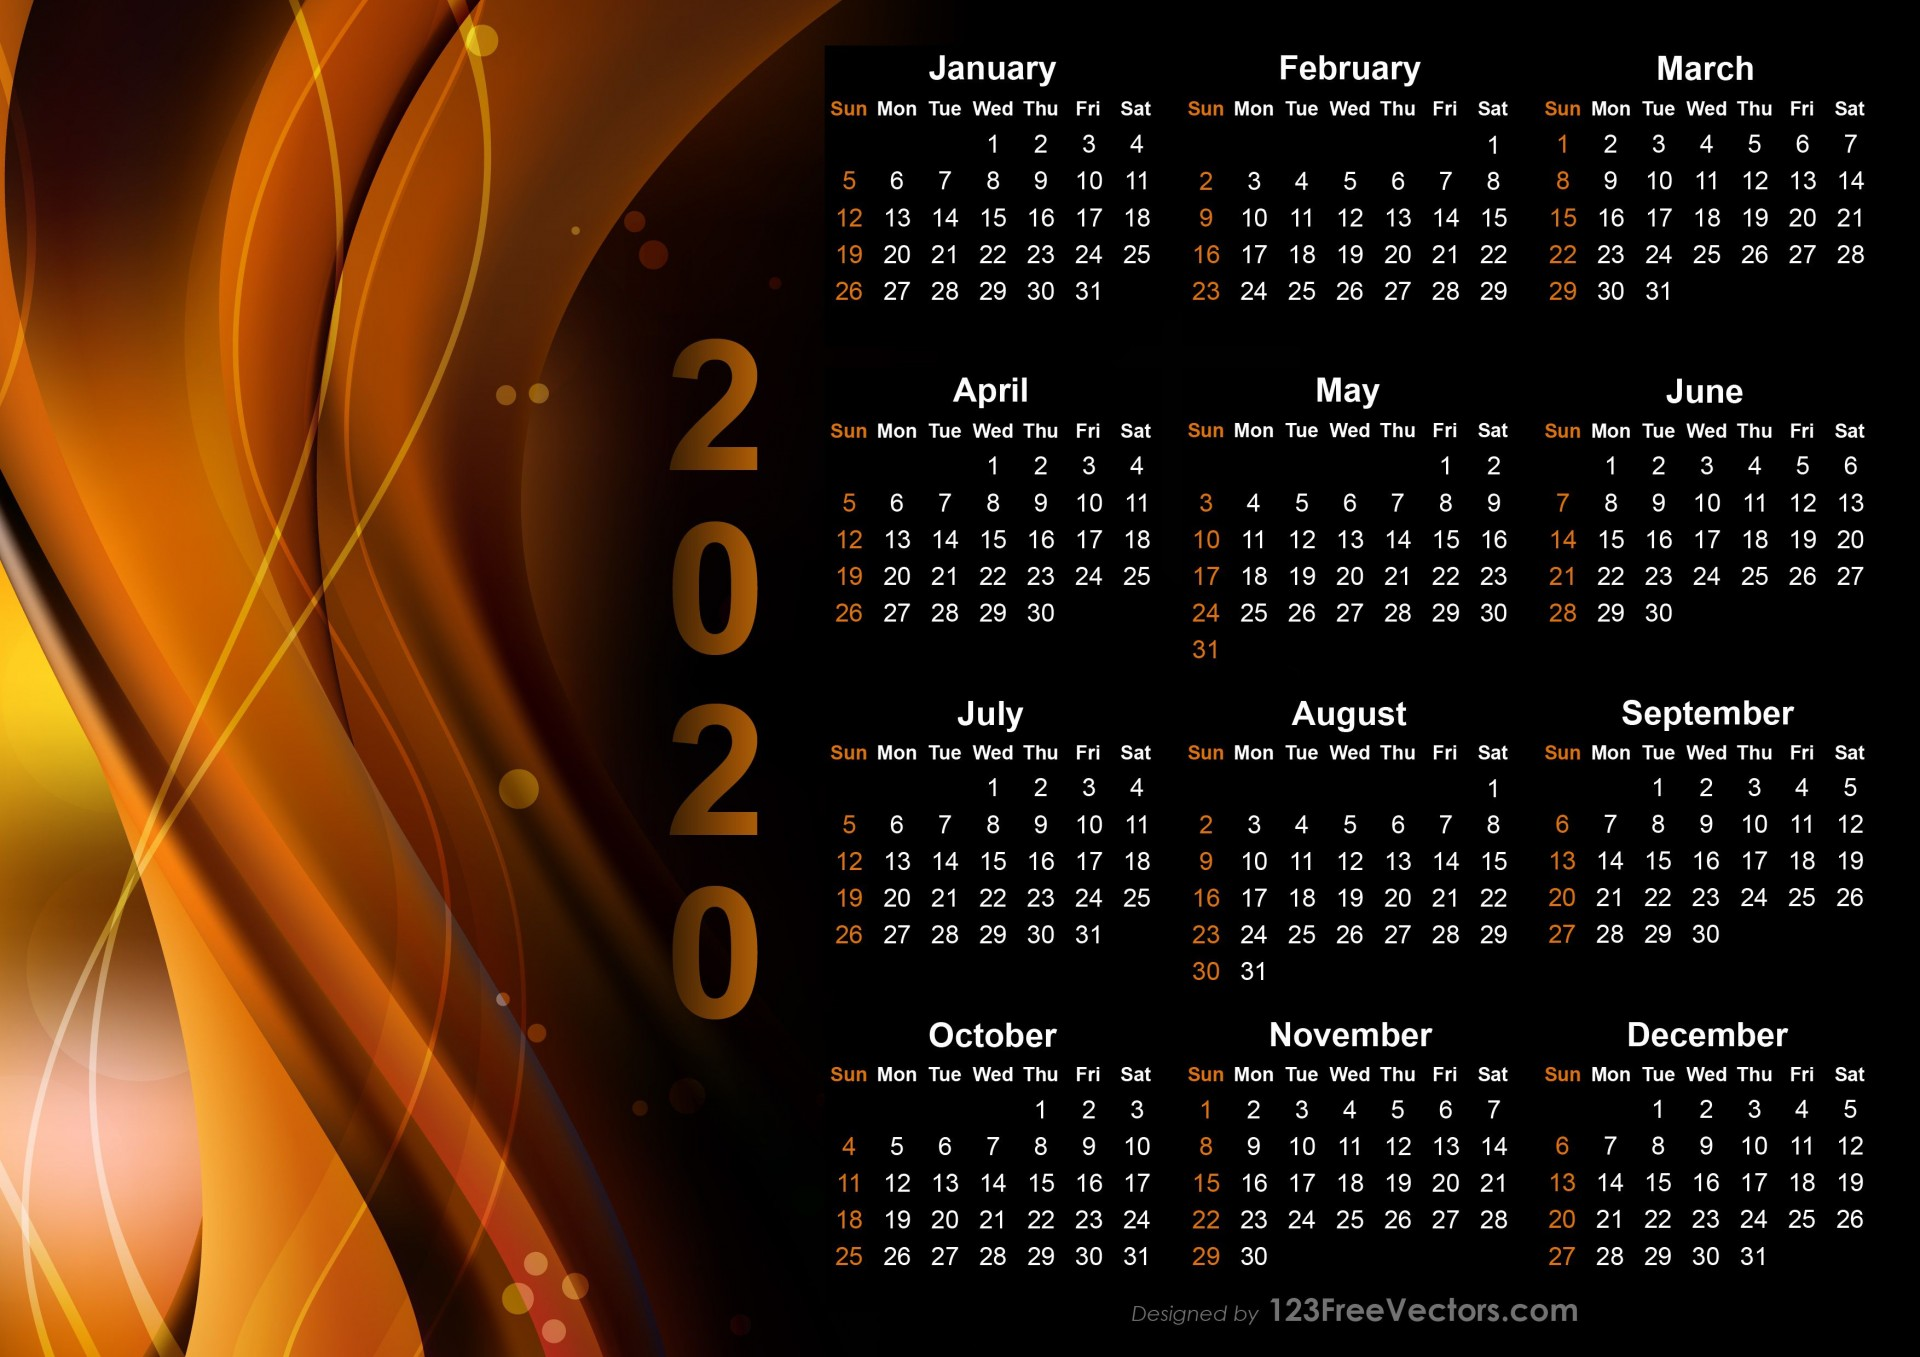 004 Astounding Calendar Template Free Download Picture  2020 Powerpoint Table Design 2019 Malaysia1920